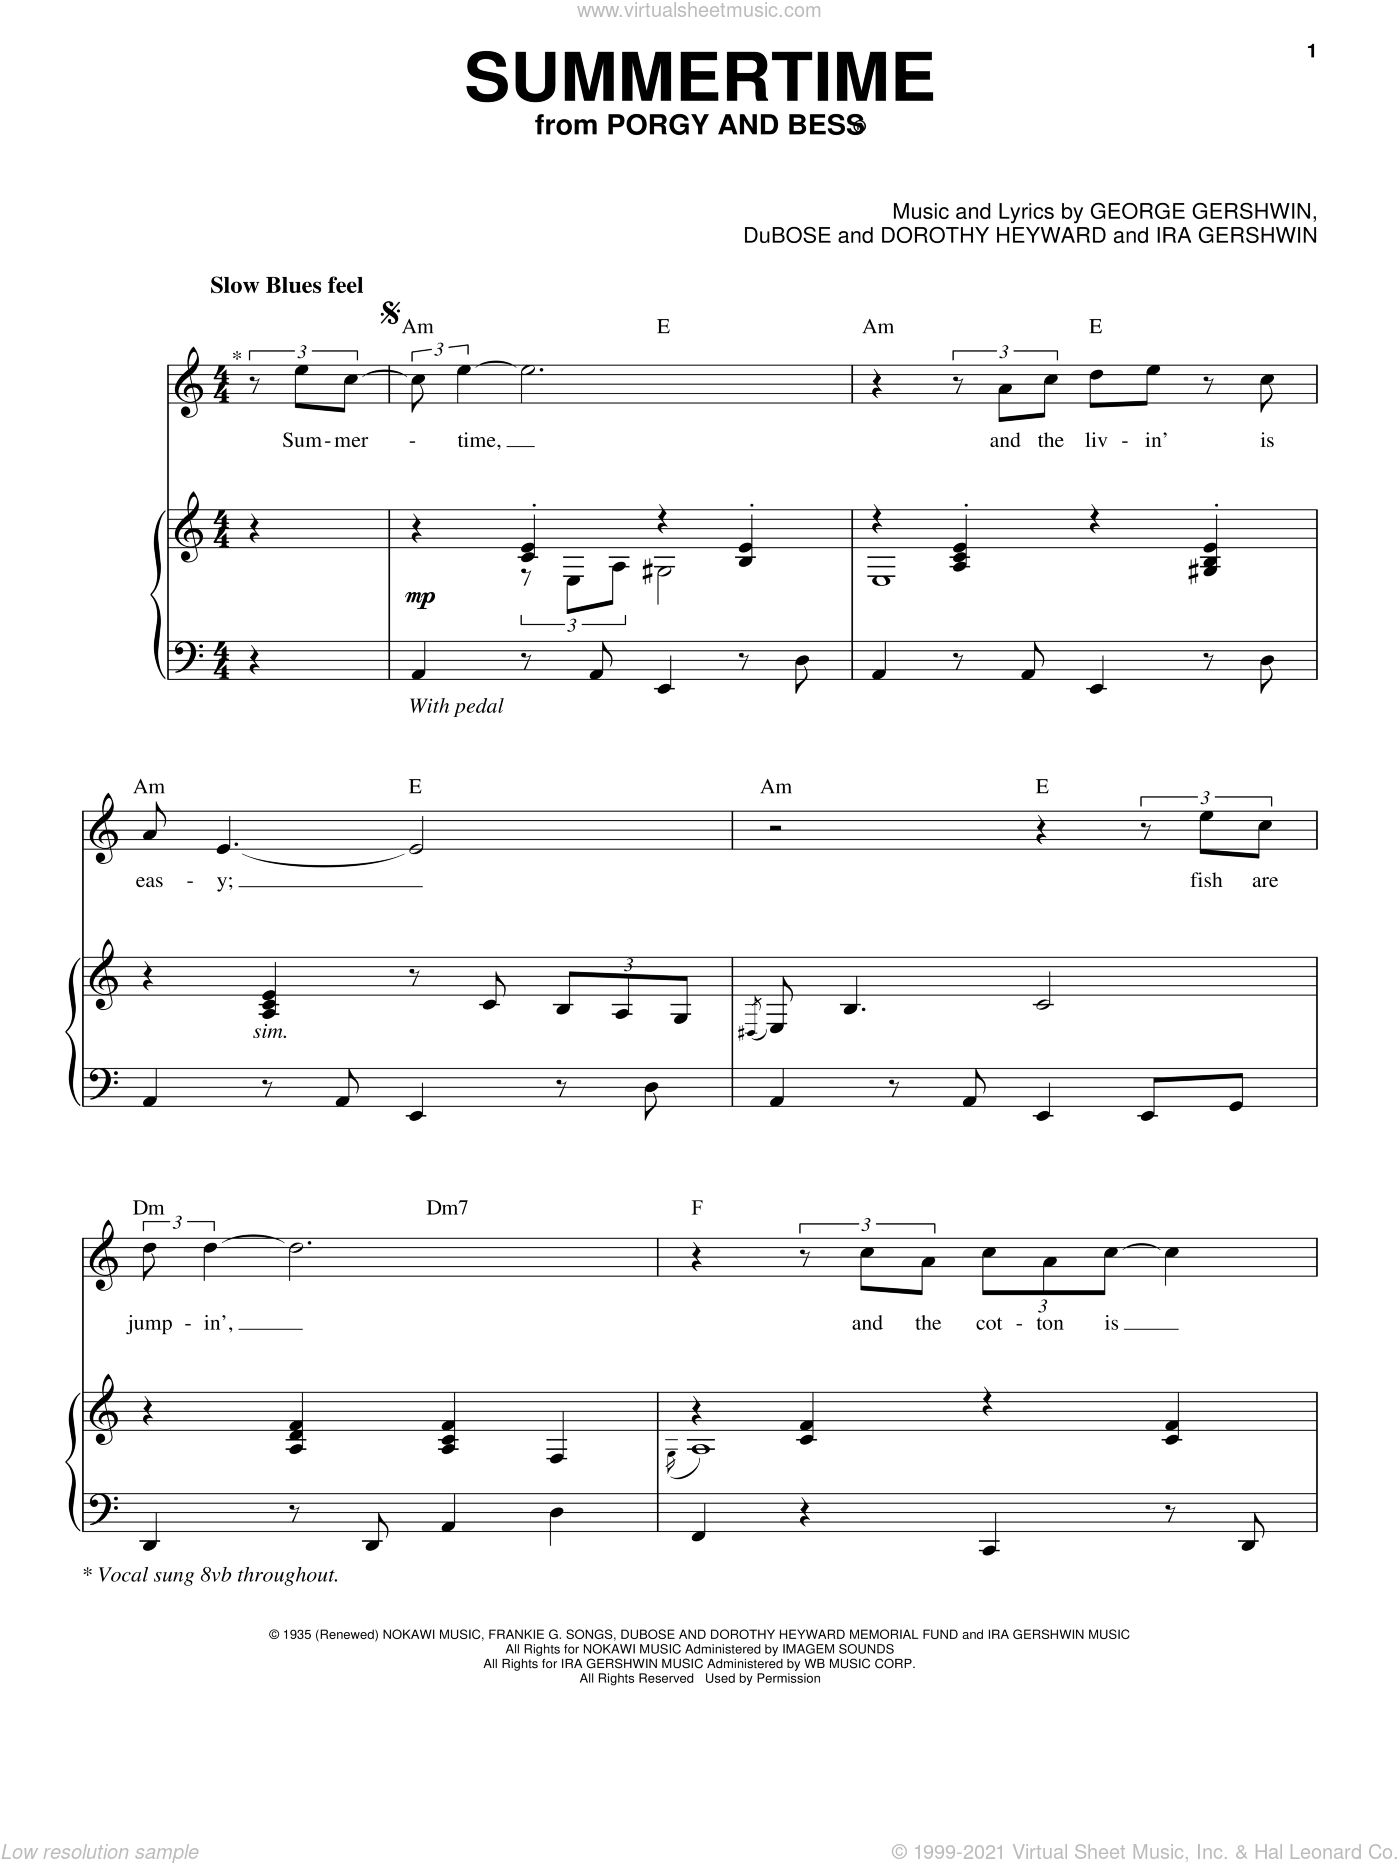 Summertime sheet music for voice and piano by George Gershwin, Dorothy Heyward, DuBose Heyward and Ira Gershwin, intermediate skill level